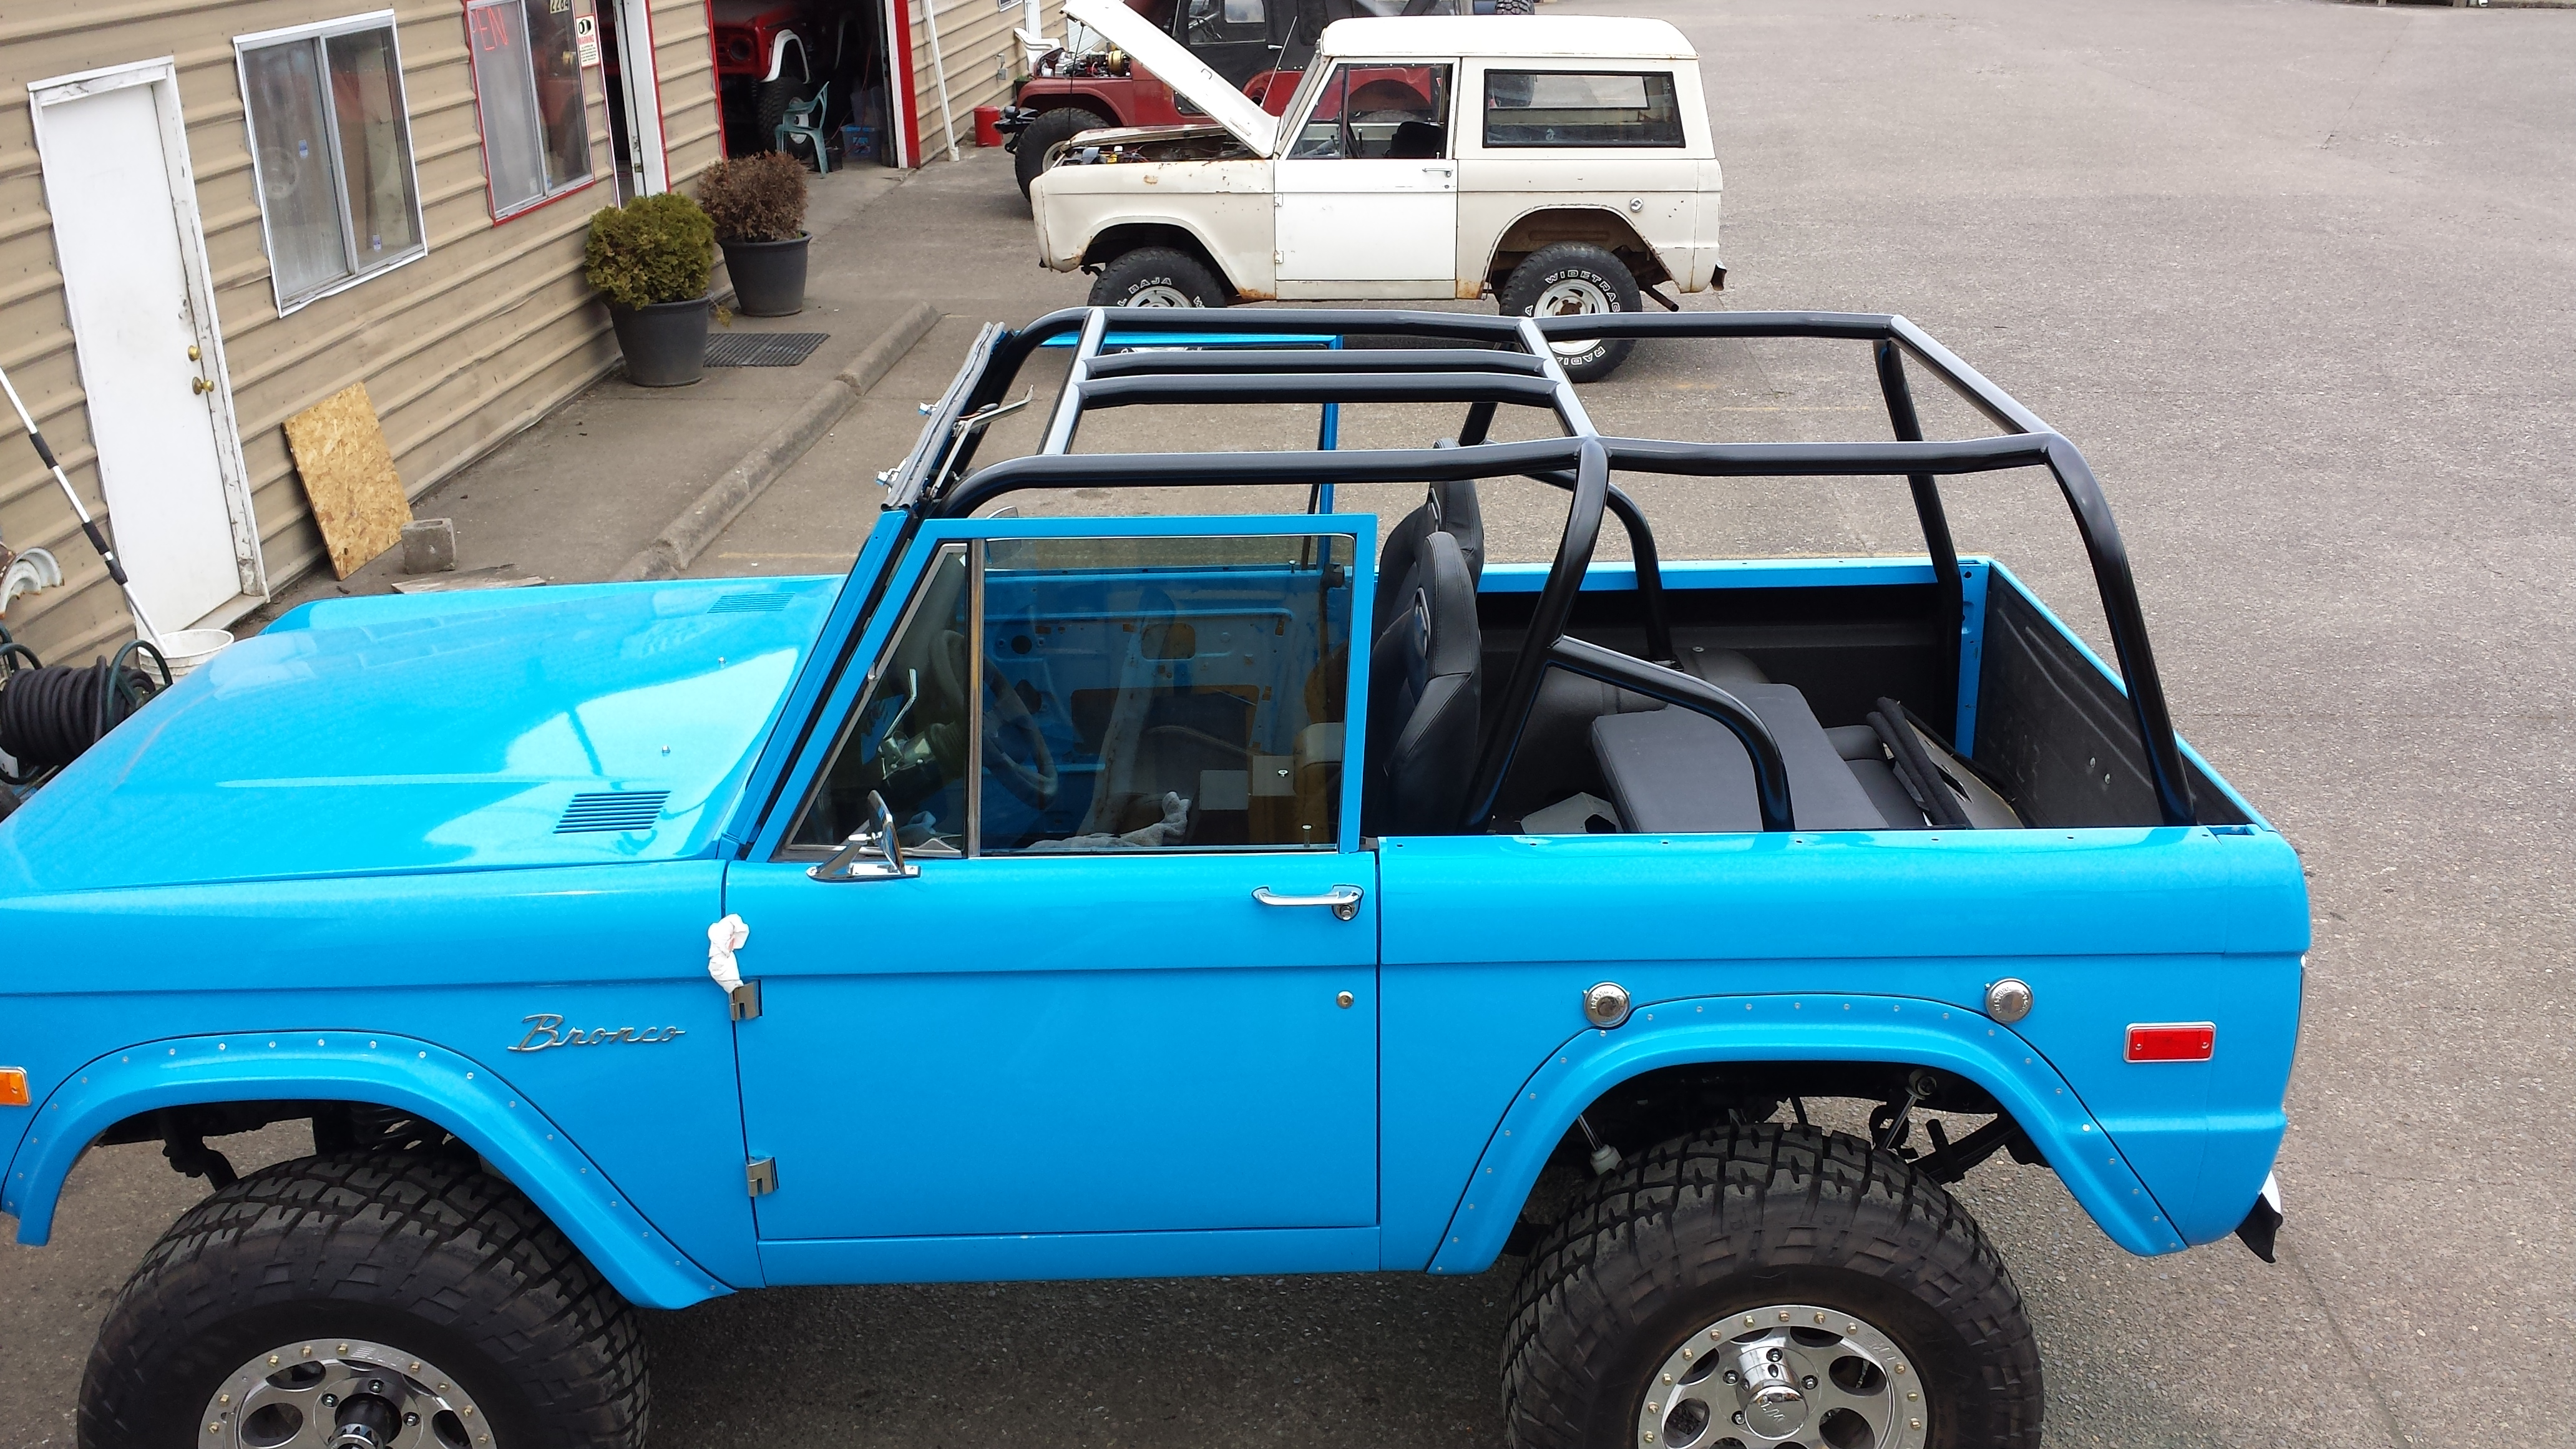 B&B Auto Repair - Blue Early Ford Bronco Roll Cage